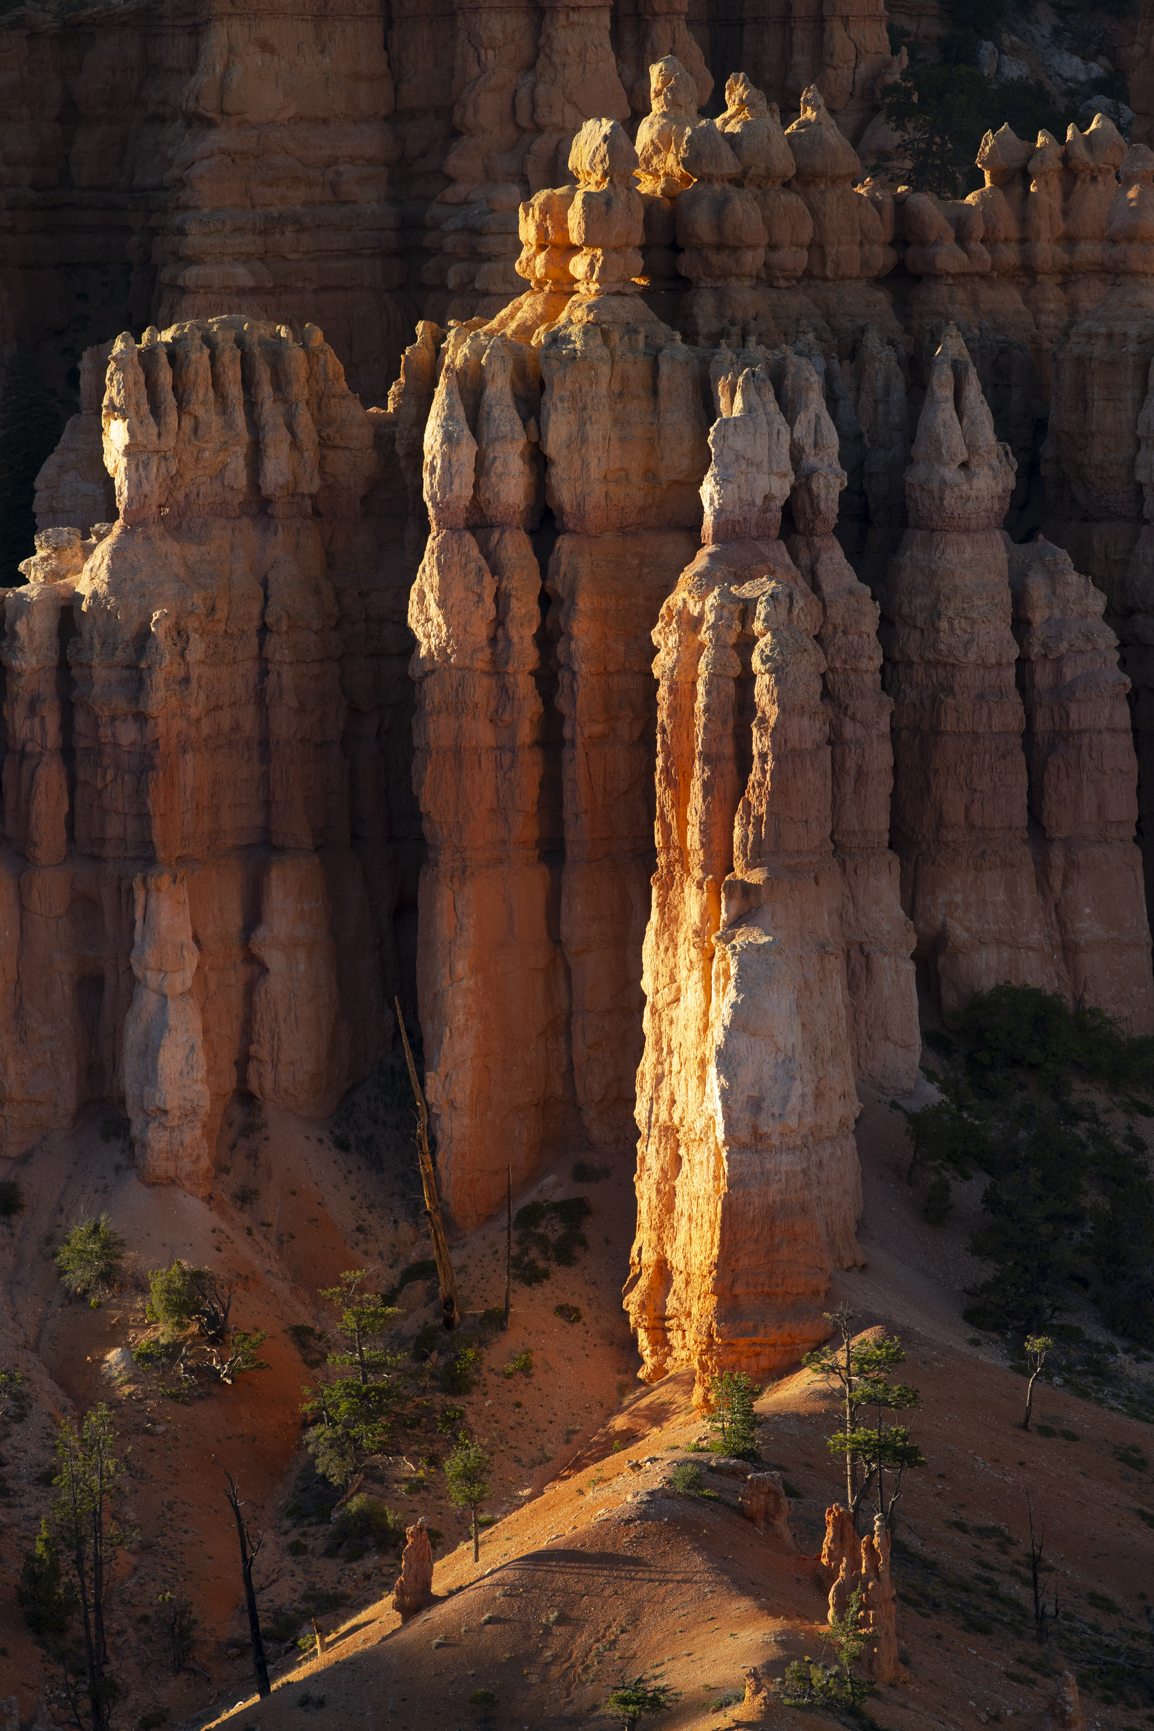 Bryce Canyon National Park with Glowing Hoodoos and Light